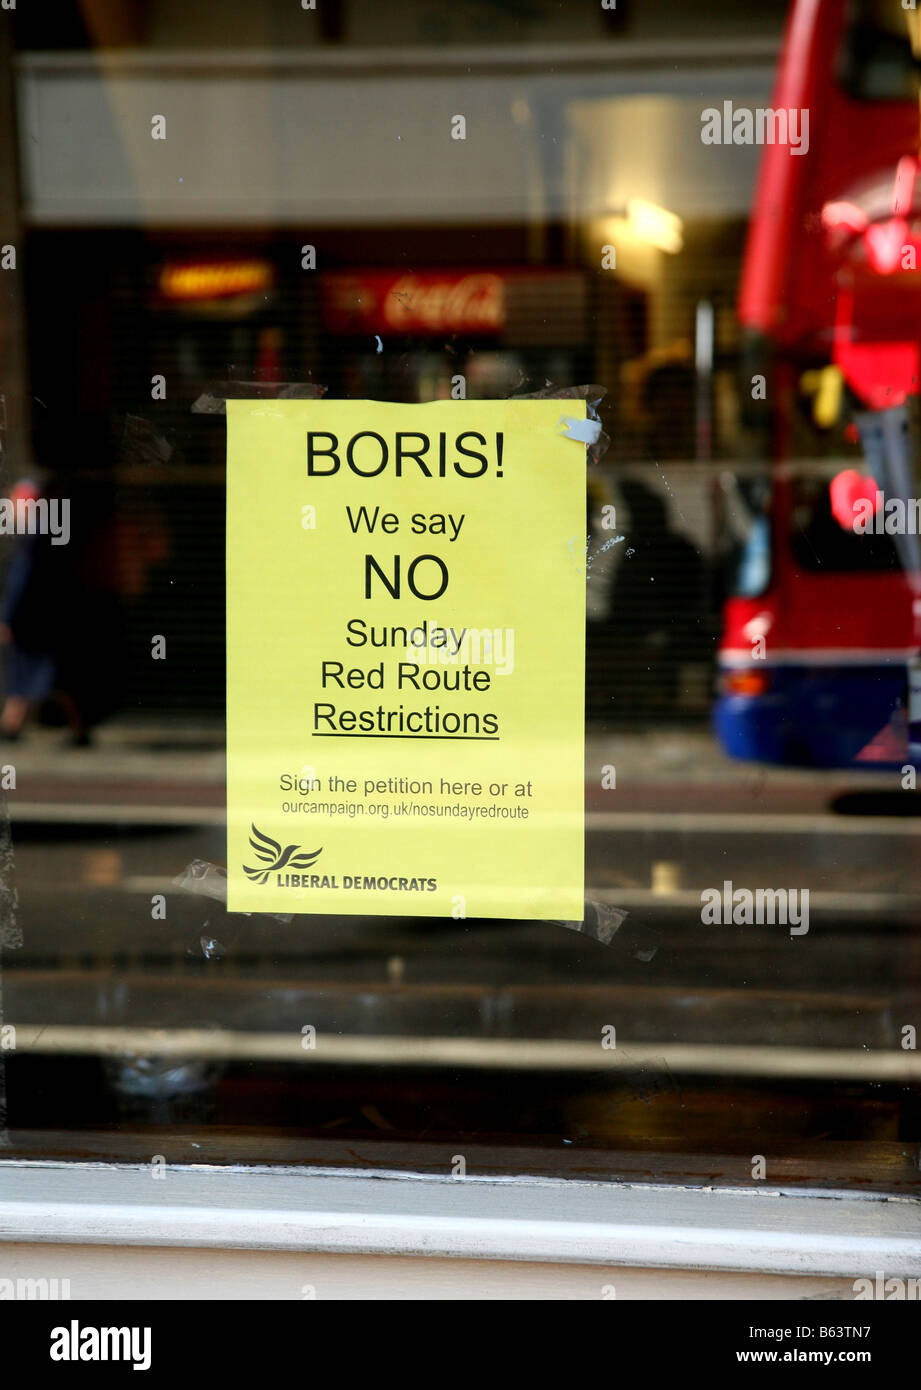 Anti-Red Route poster in shop window, Holloway Road, London - Stock Image